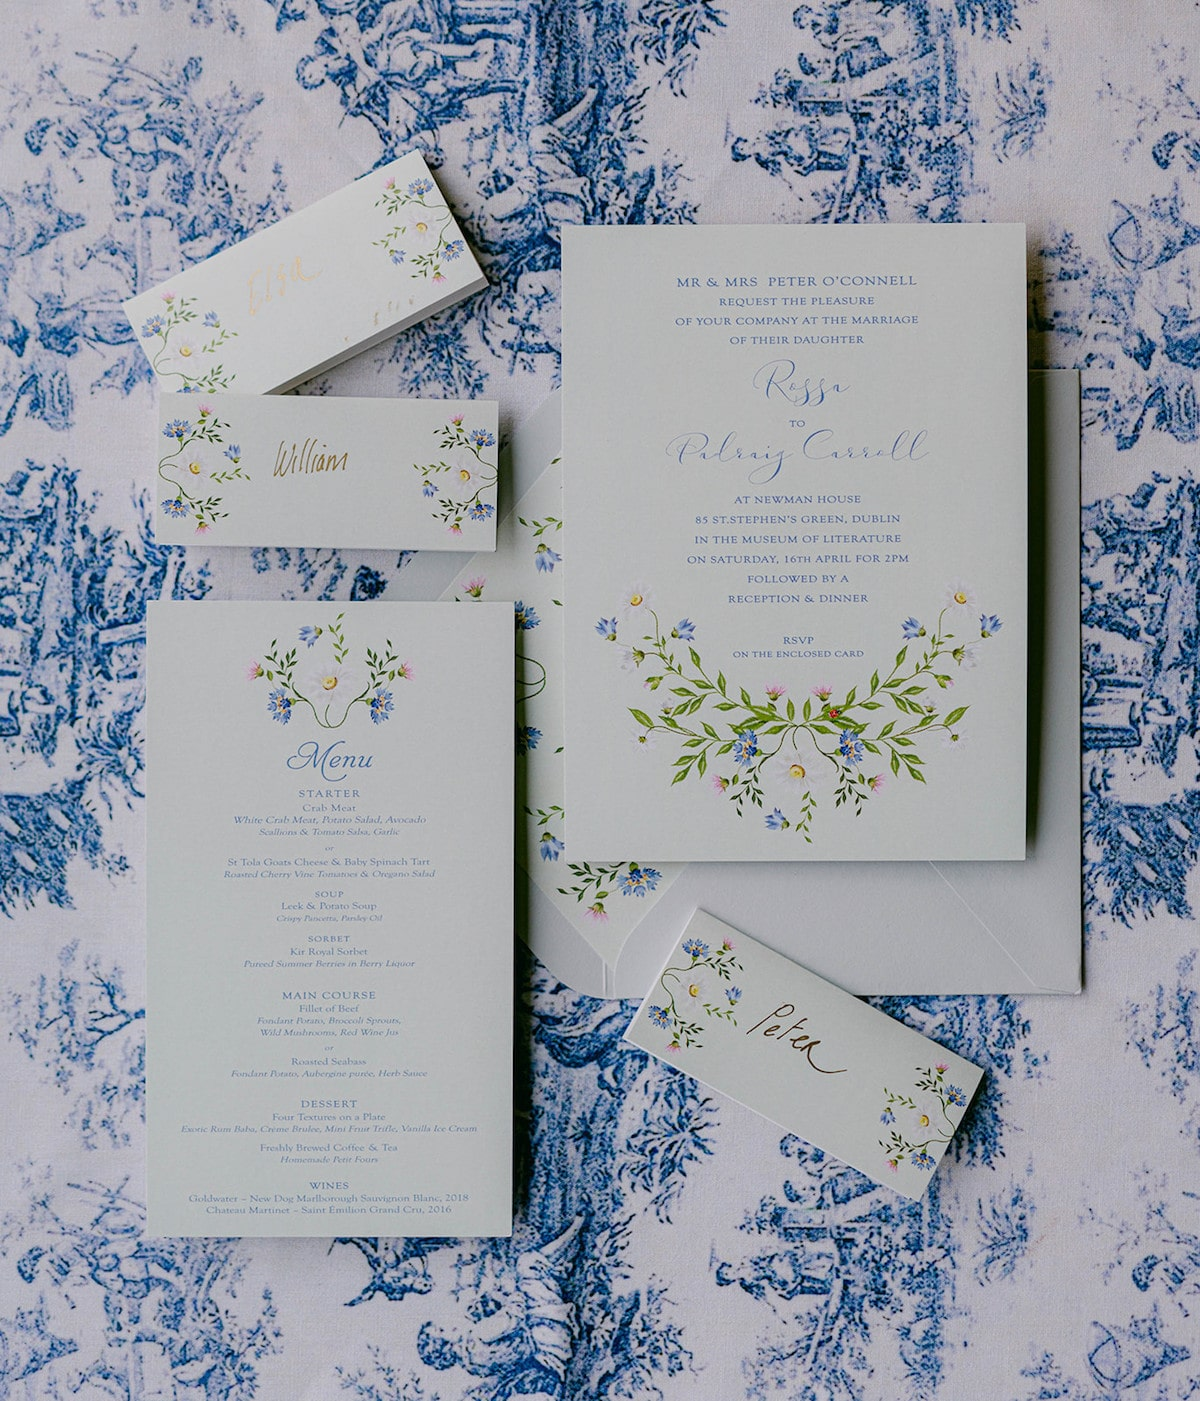 Floral wedding invitation on toile background